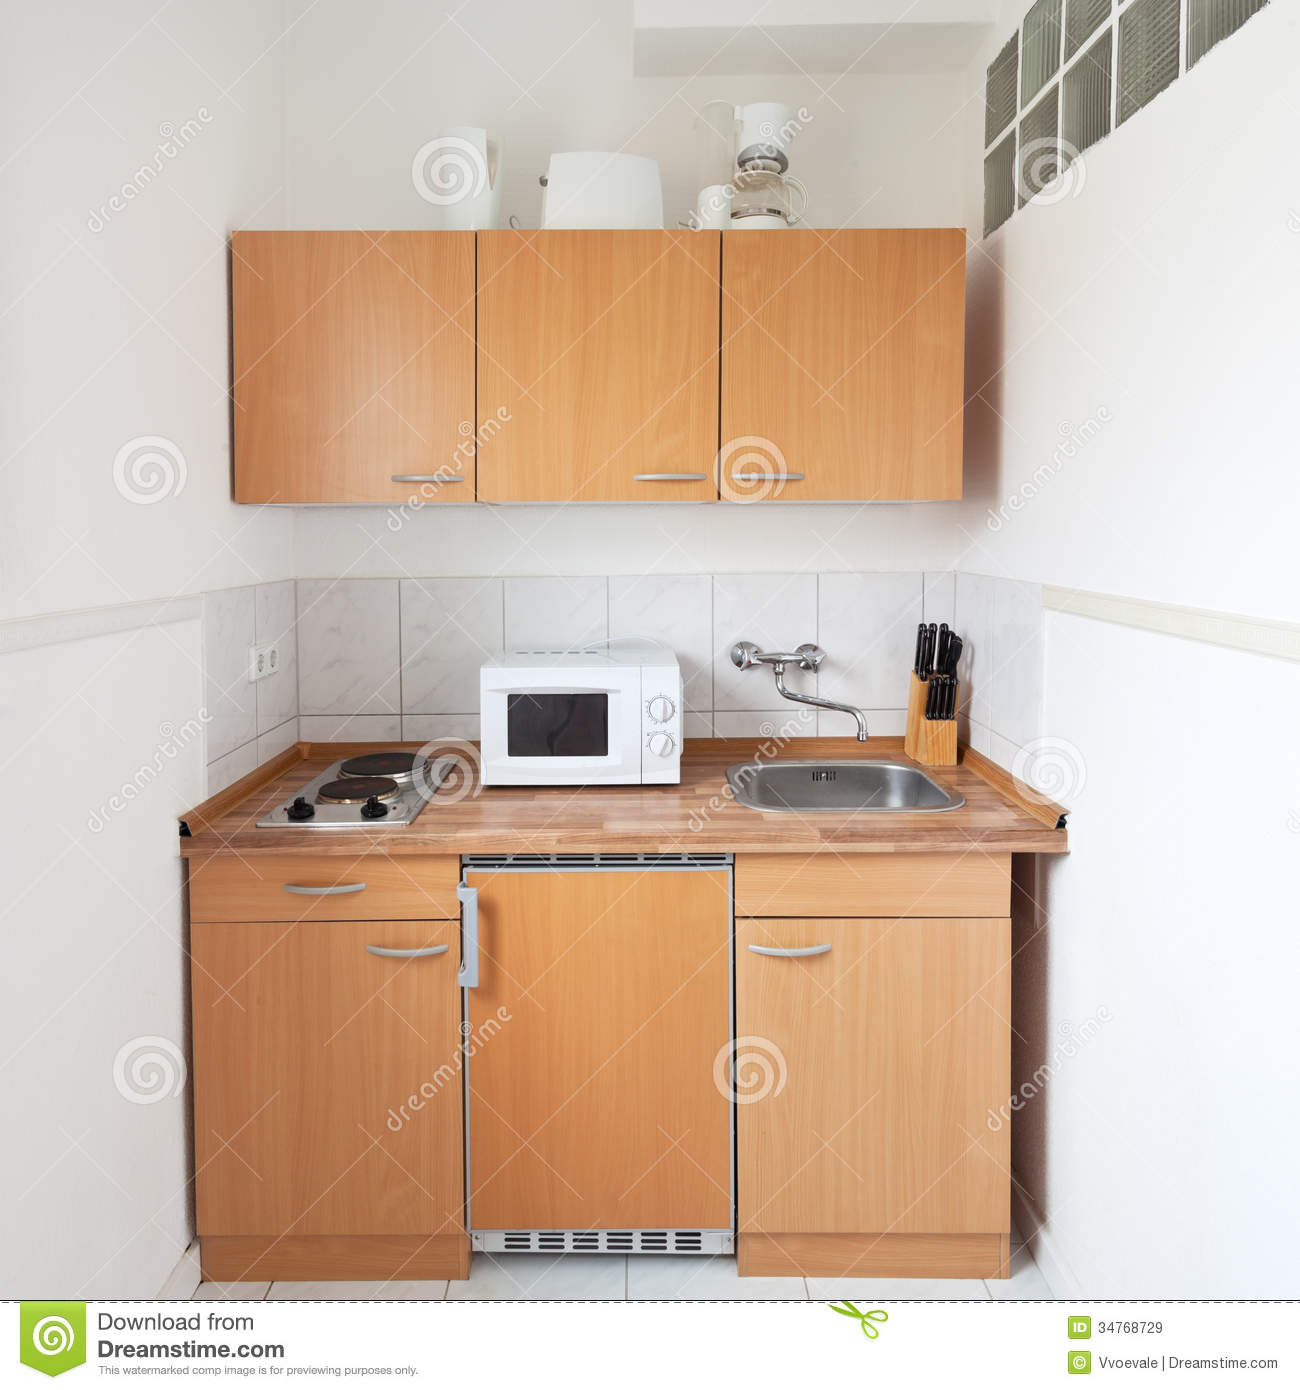 Simple Kitchen Design Hpd453: Simple Kitchen With Furniture Set Royalty Free Stock